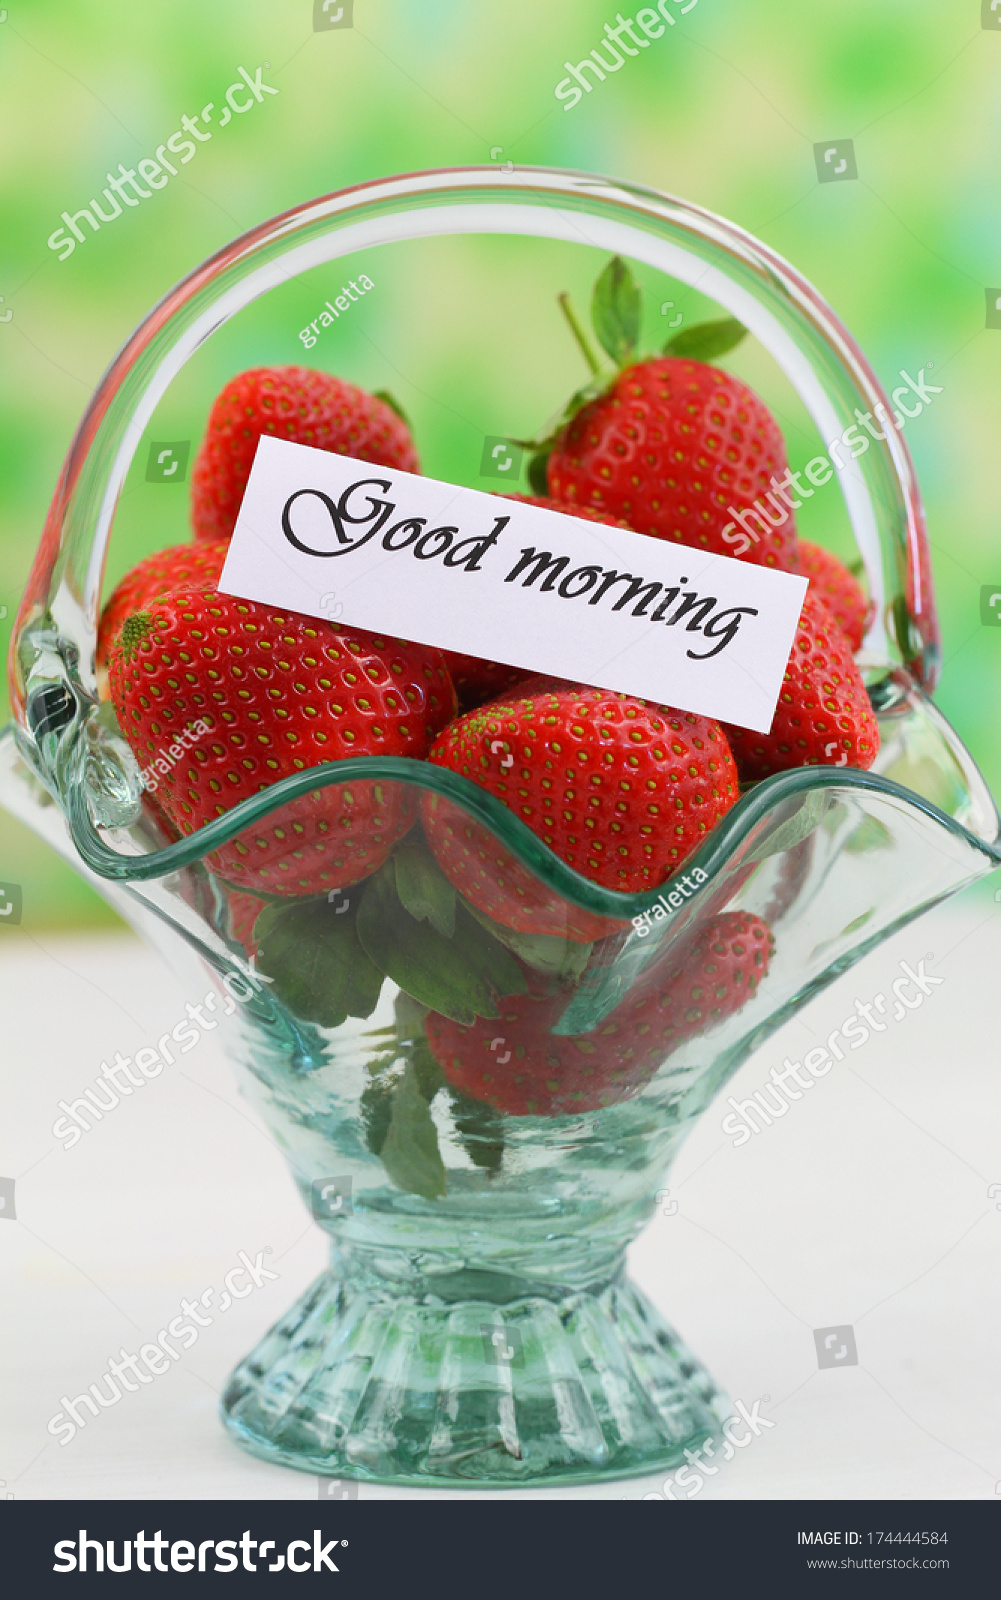 Good Morning Card Strawberries Vintage Glass Stock Photo Edit Now